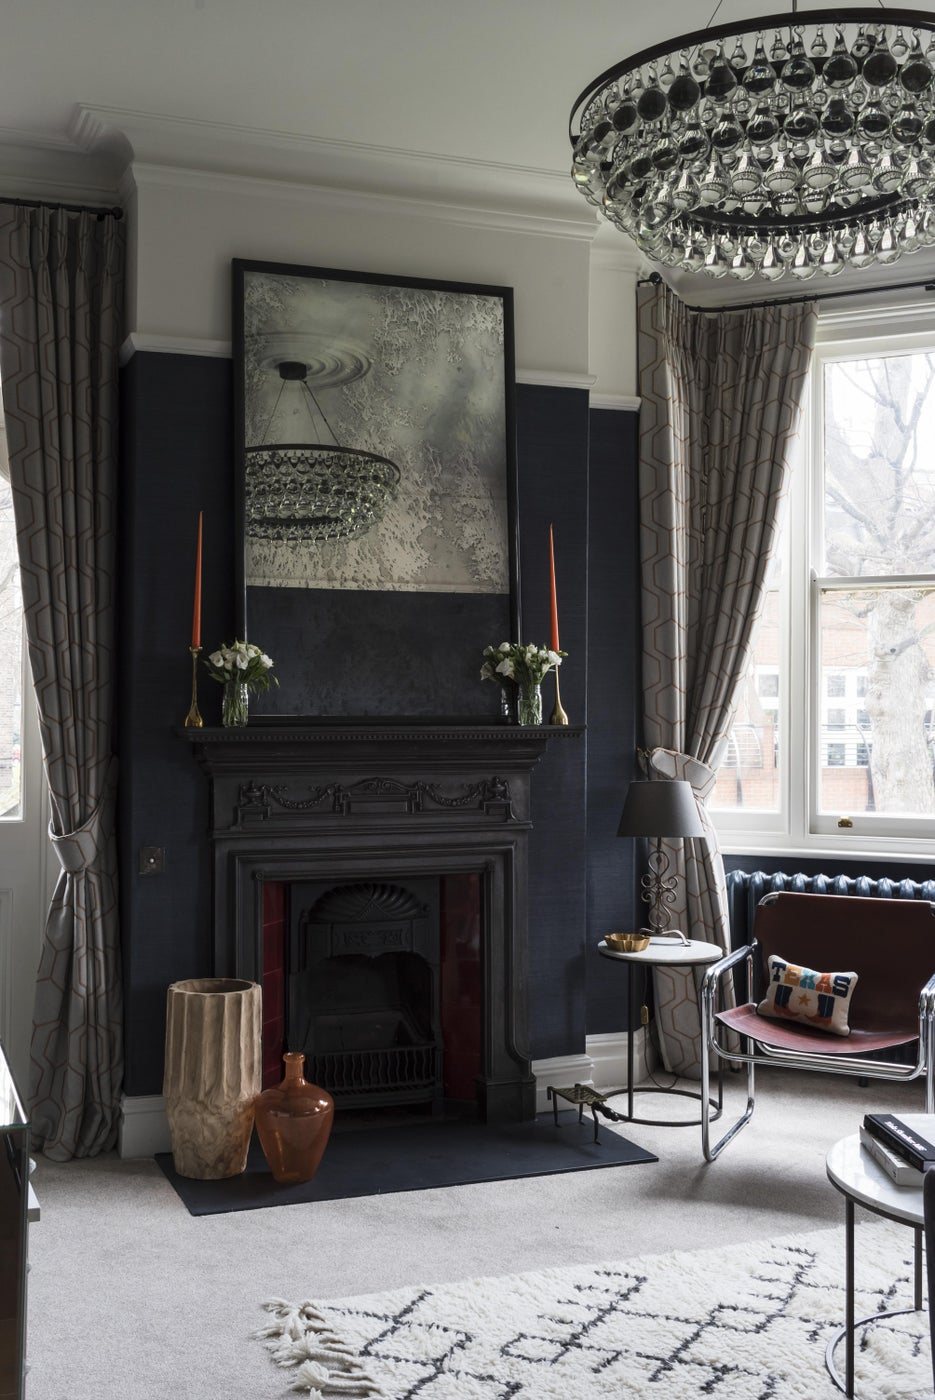 Brook Green Apartment, London - Pear drop chandelier and bespoke antique mirror